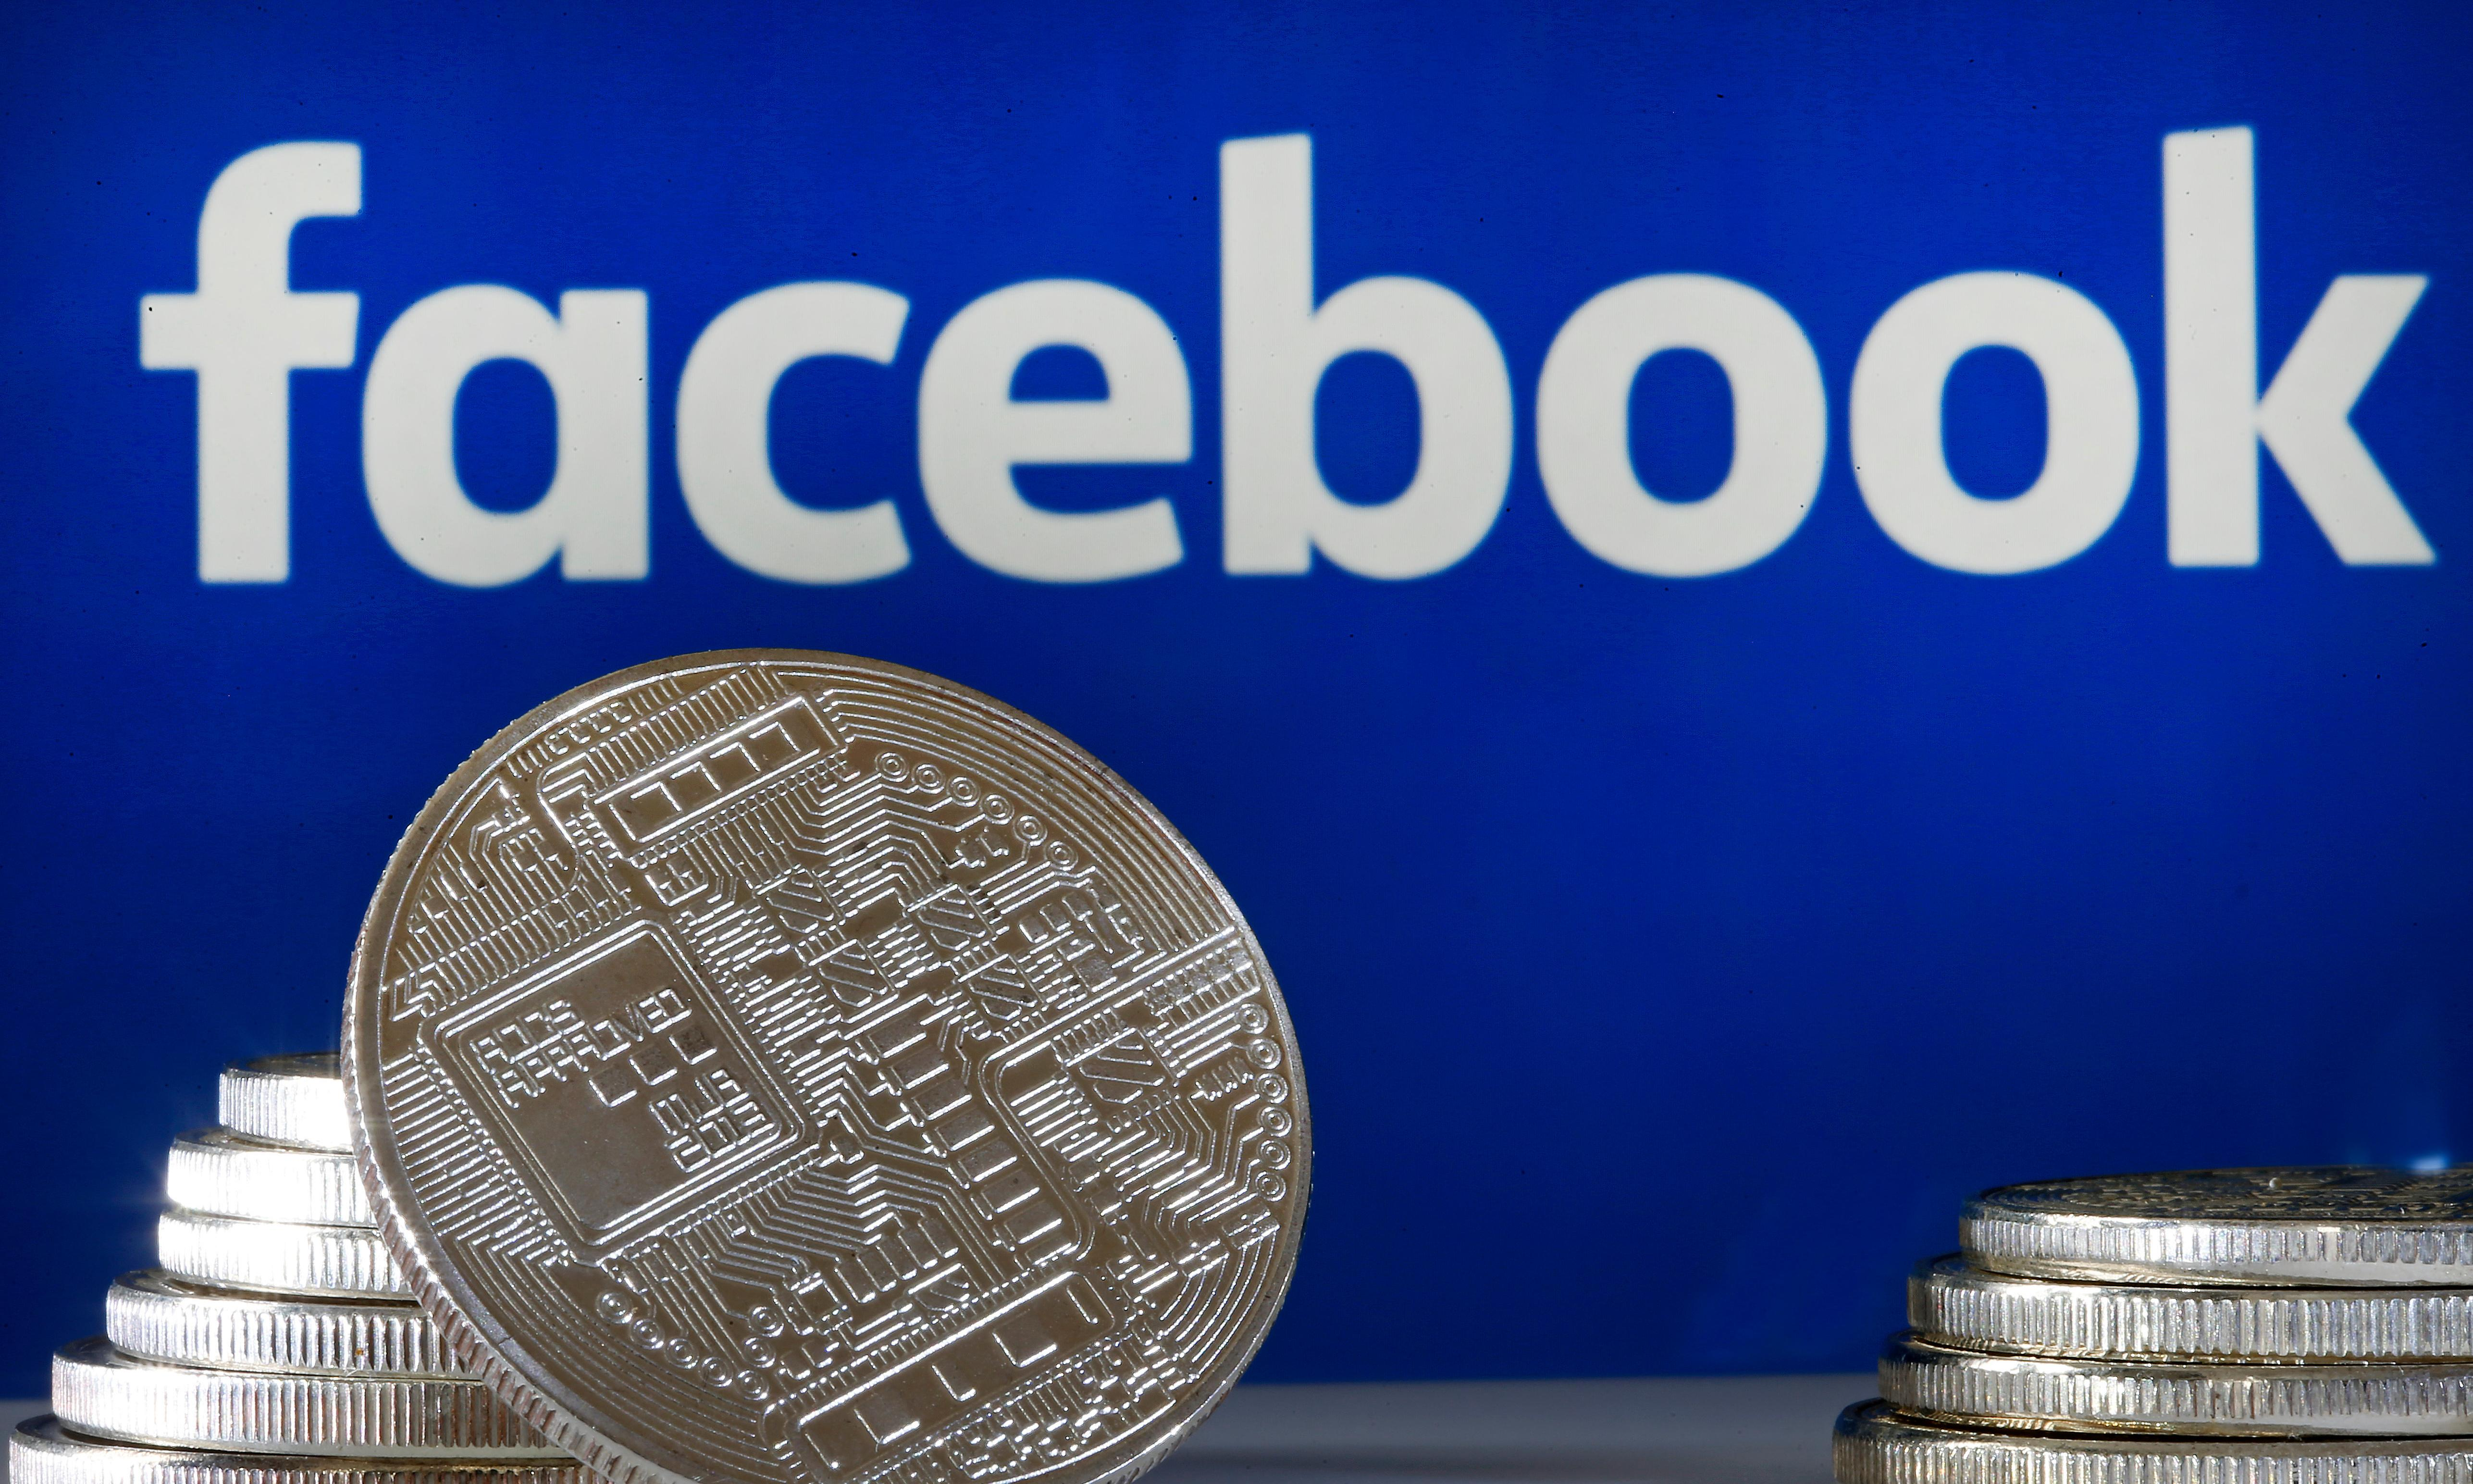 Libra: will Facebook's new currency be stopped in its tracks?